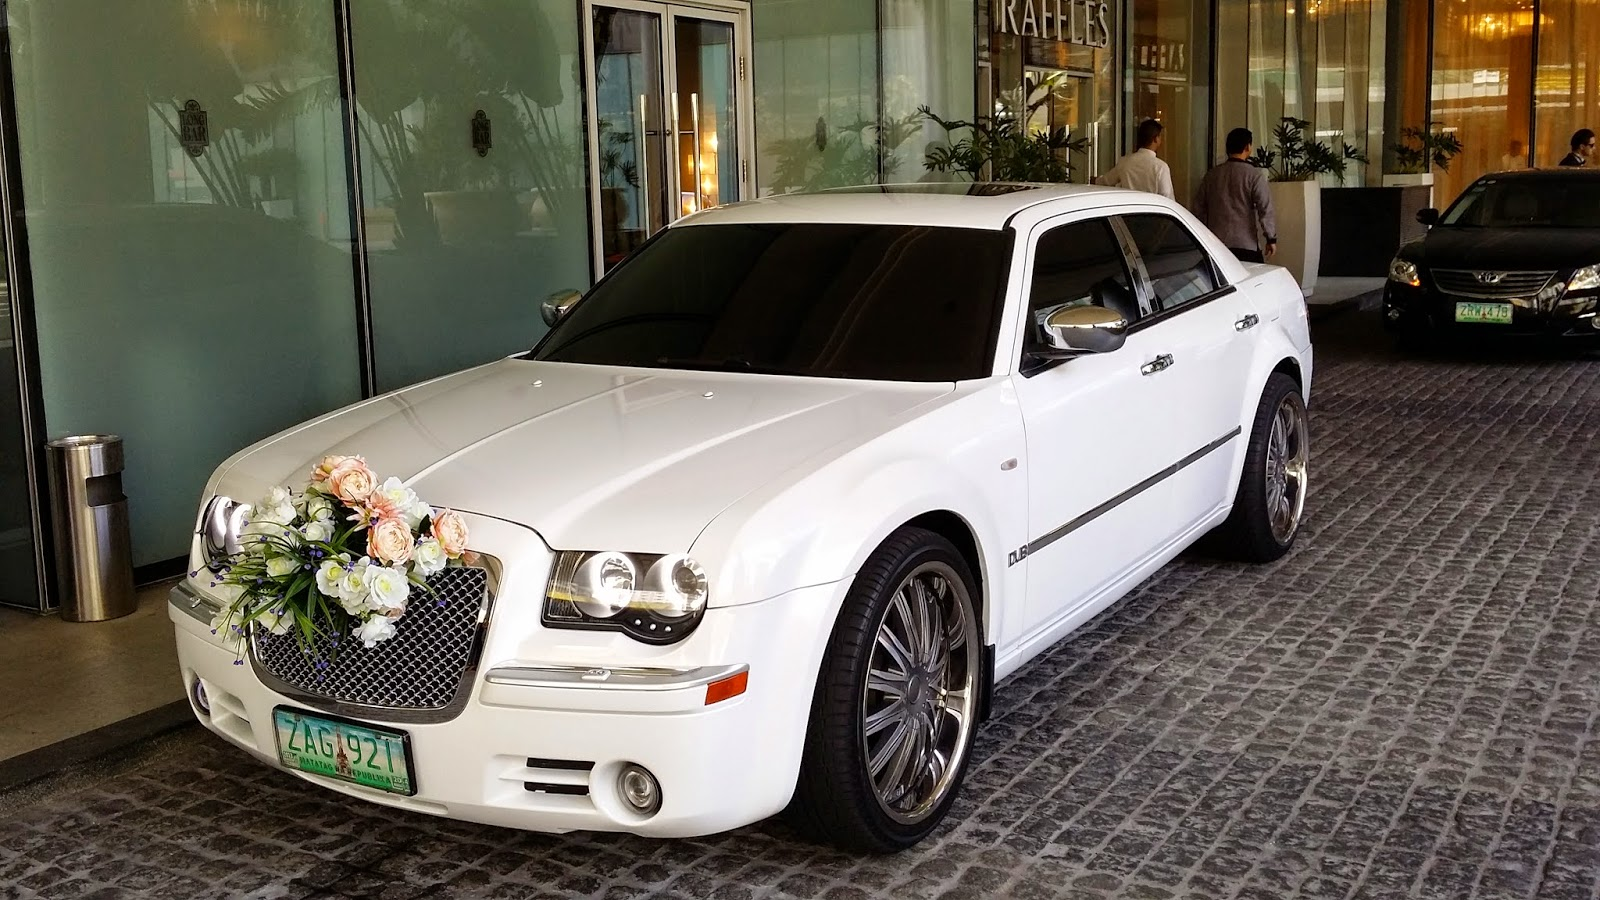 Bridal Car Philippines Bridal Car Philippines For Rent